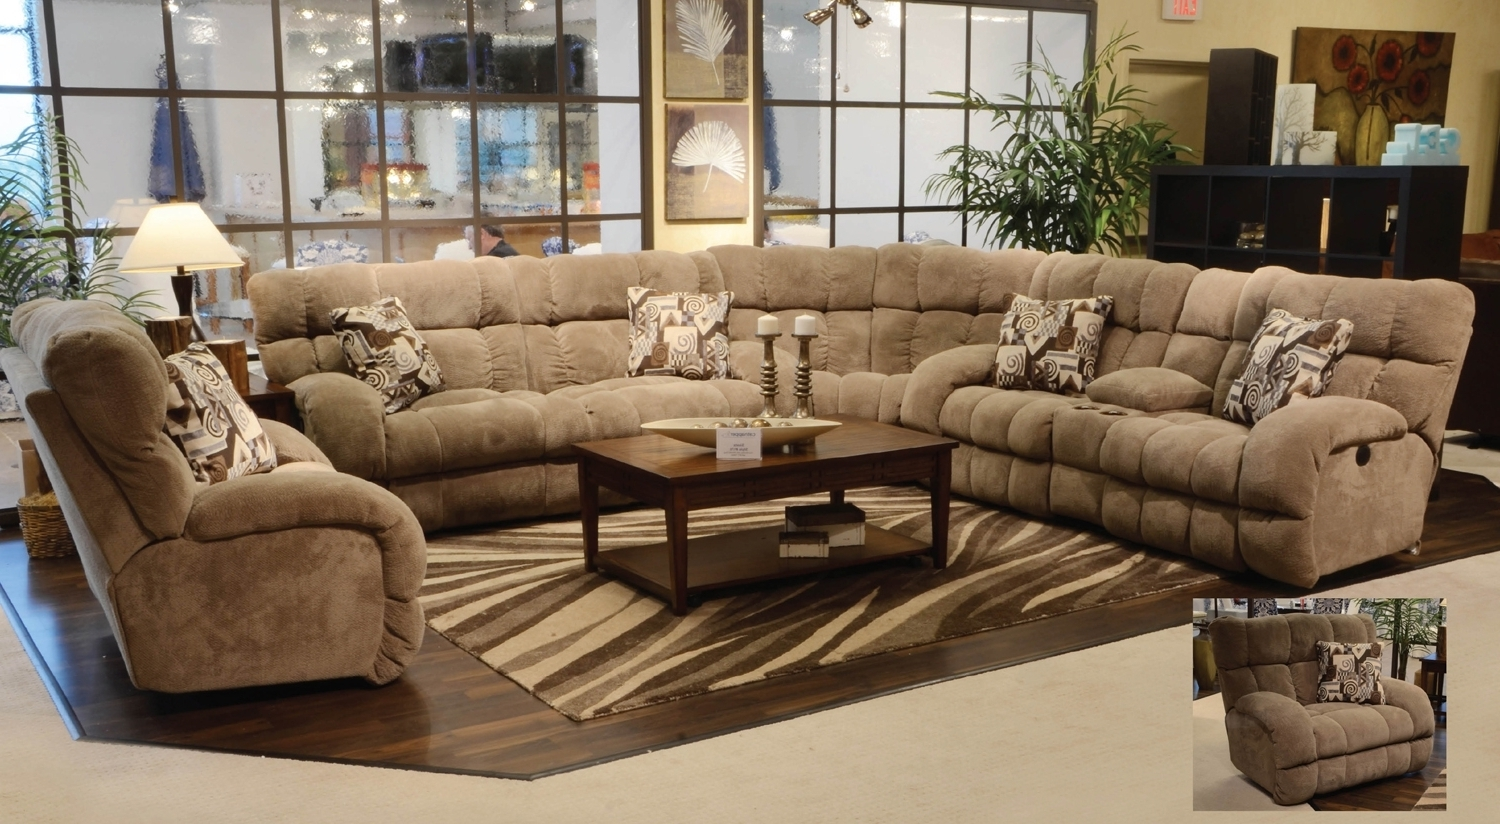 Huge Sofas For Favorite Sofa : Fascinating Large Sectional Sofa Modern Sofas Large (View 10 of 20)